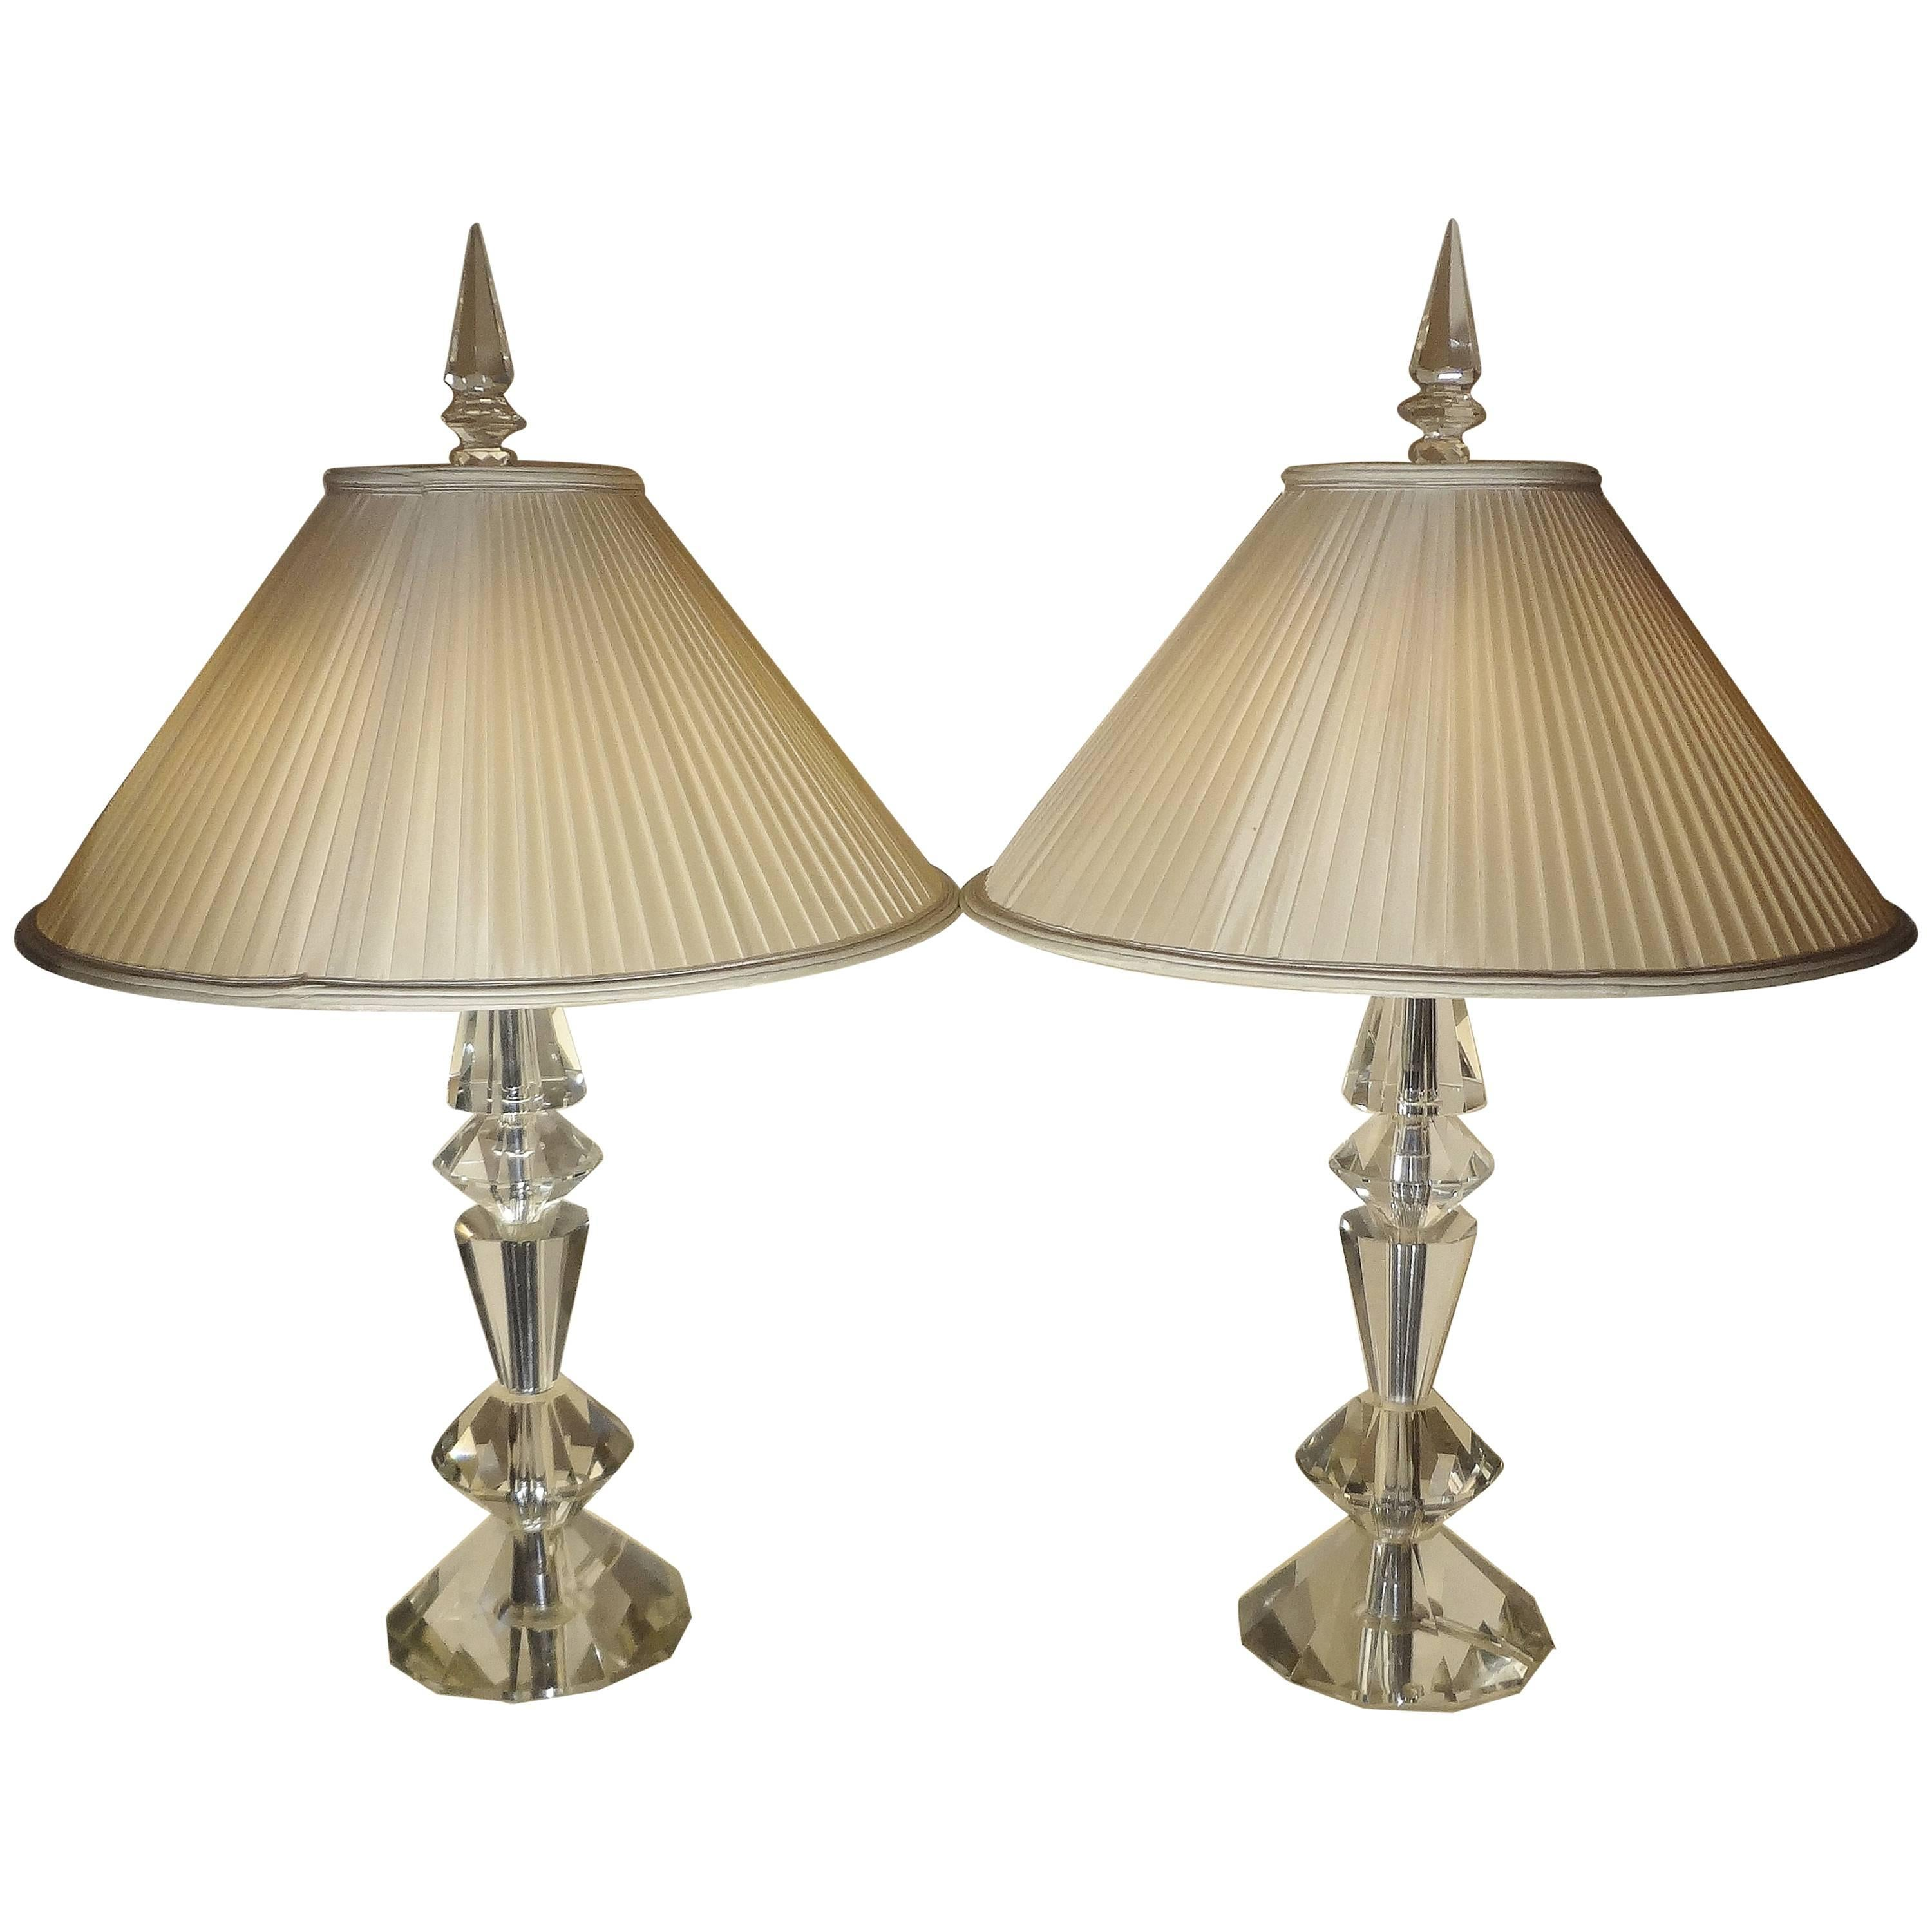 Spectacular Pair of Glass Table Lamps, France, 1970s